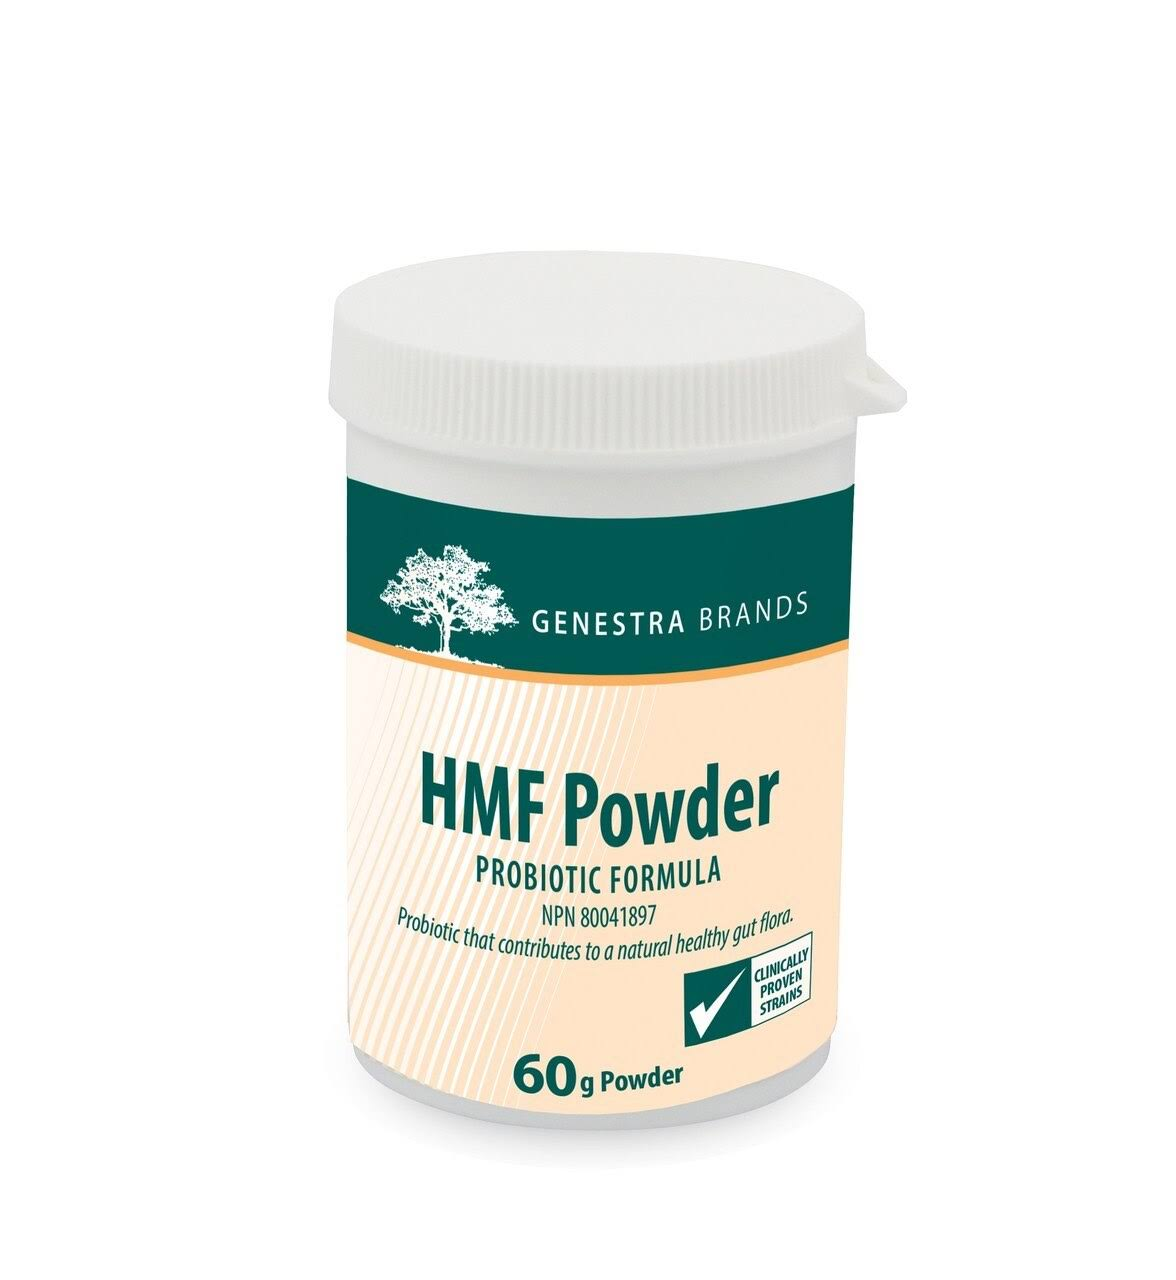 HMF Powder Probiotics Formula - 60g